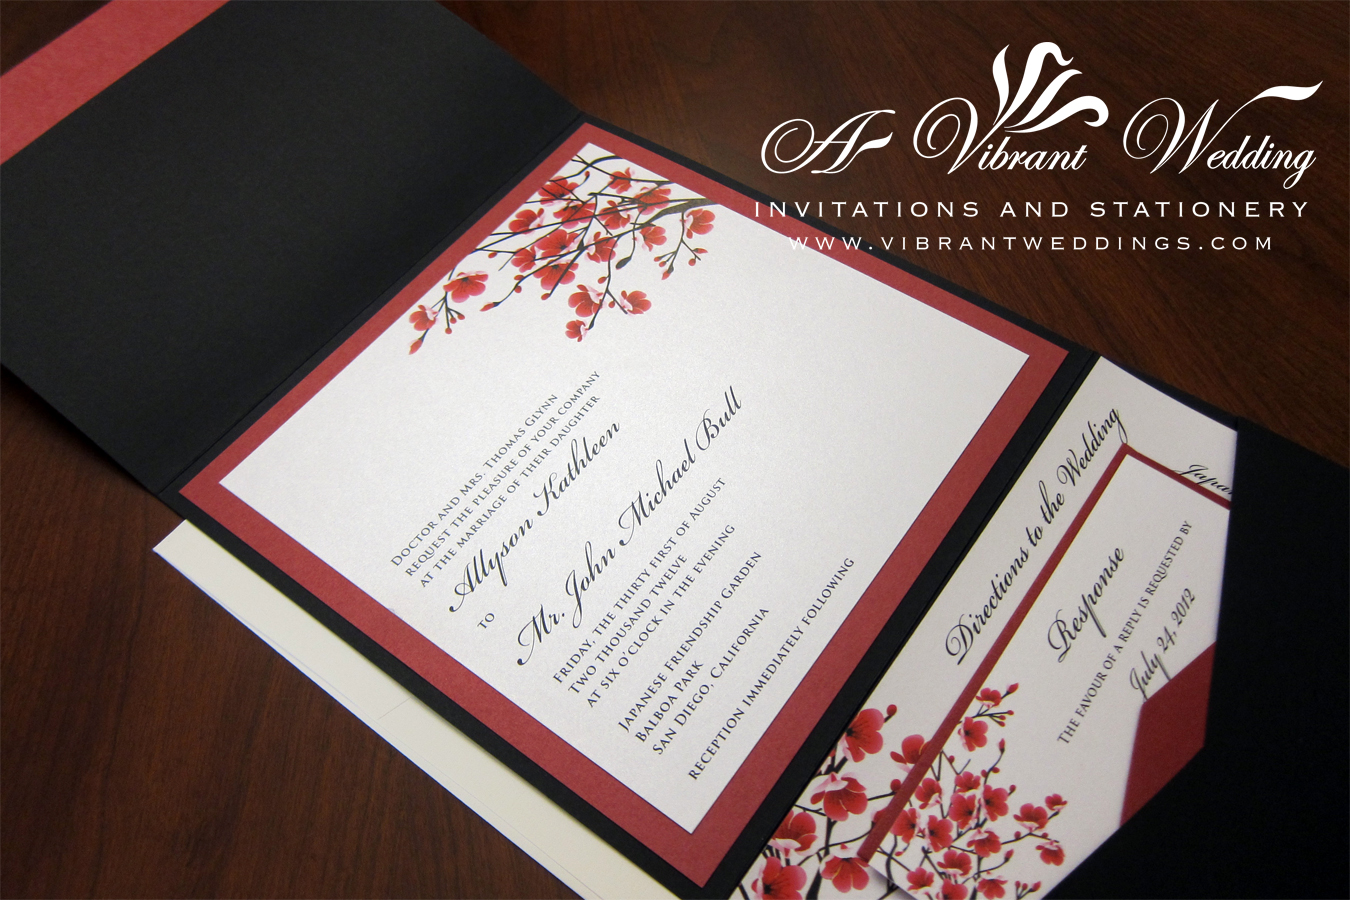 black red cherry blossom design wedding invitation 7x7 pocketfold style